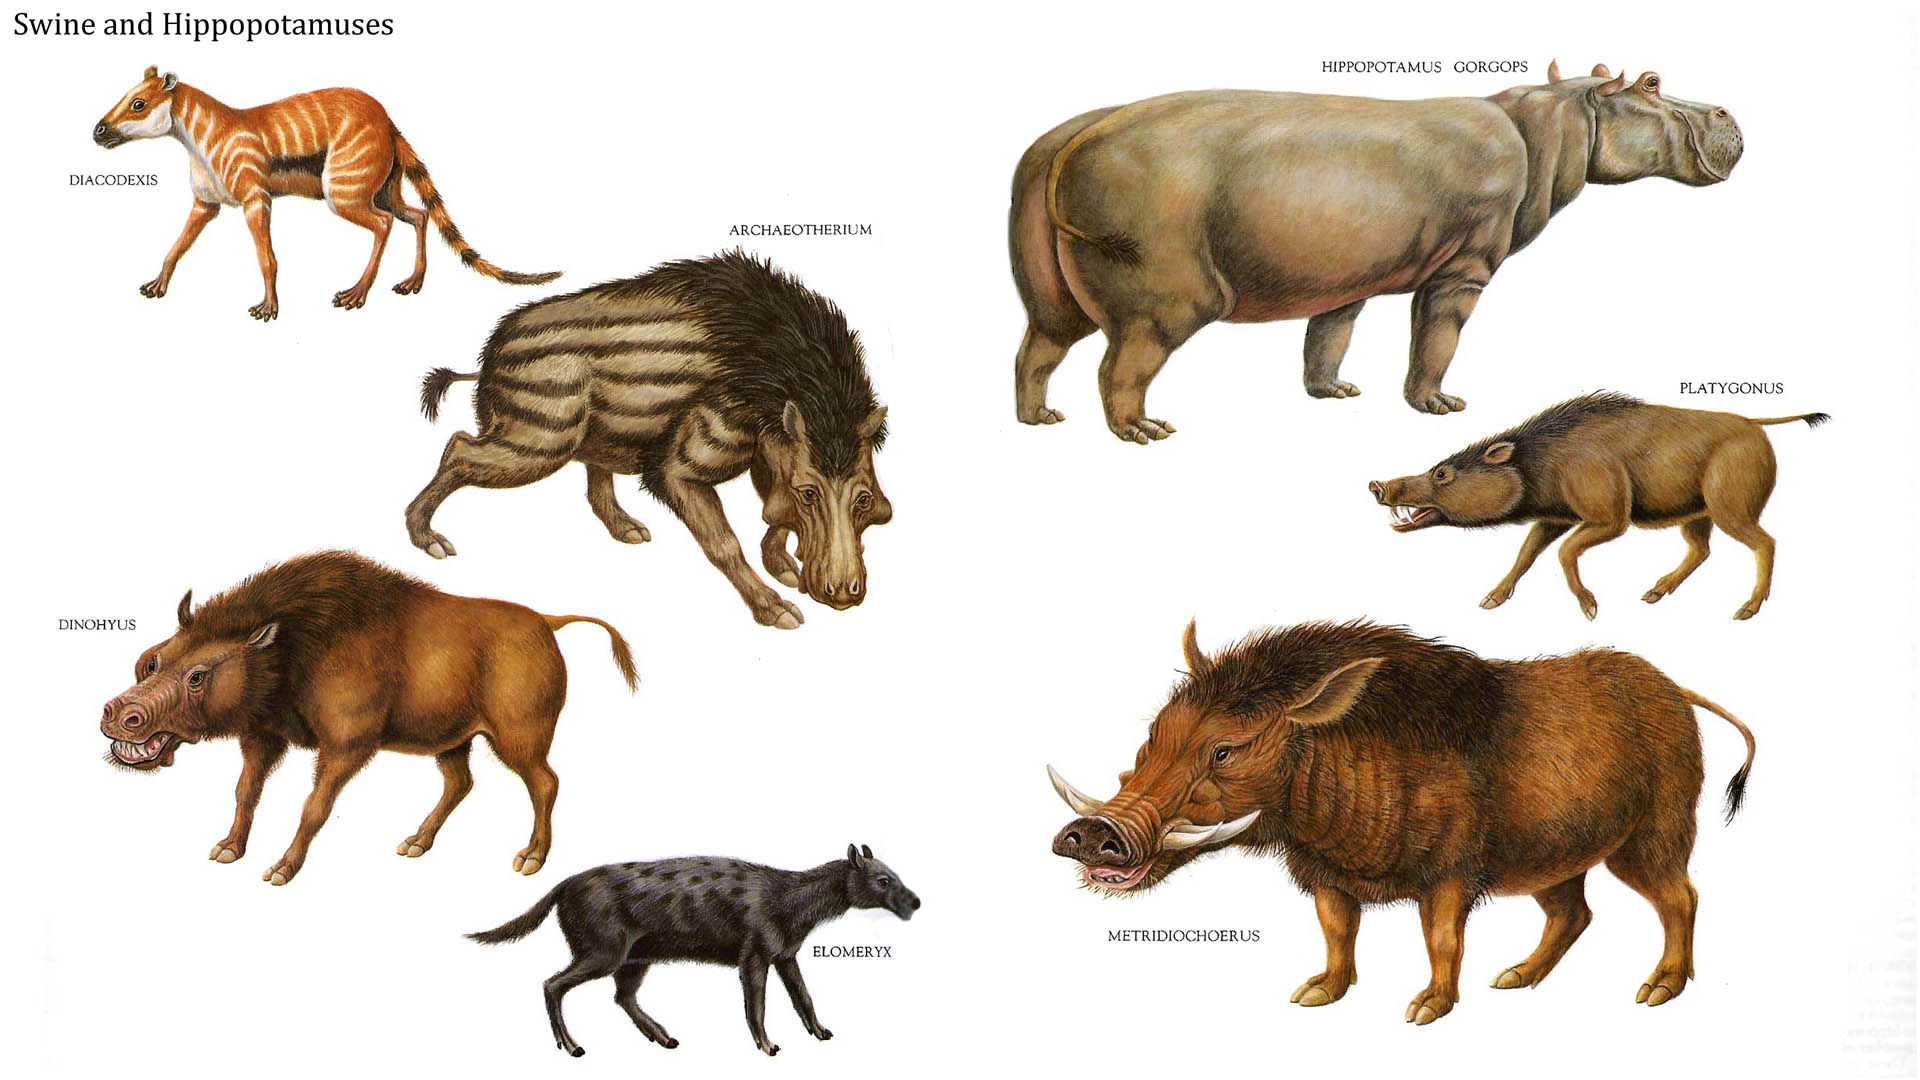 Swine And Hippopotamuses